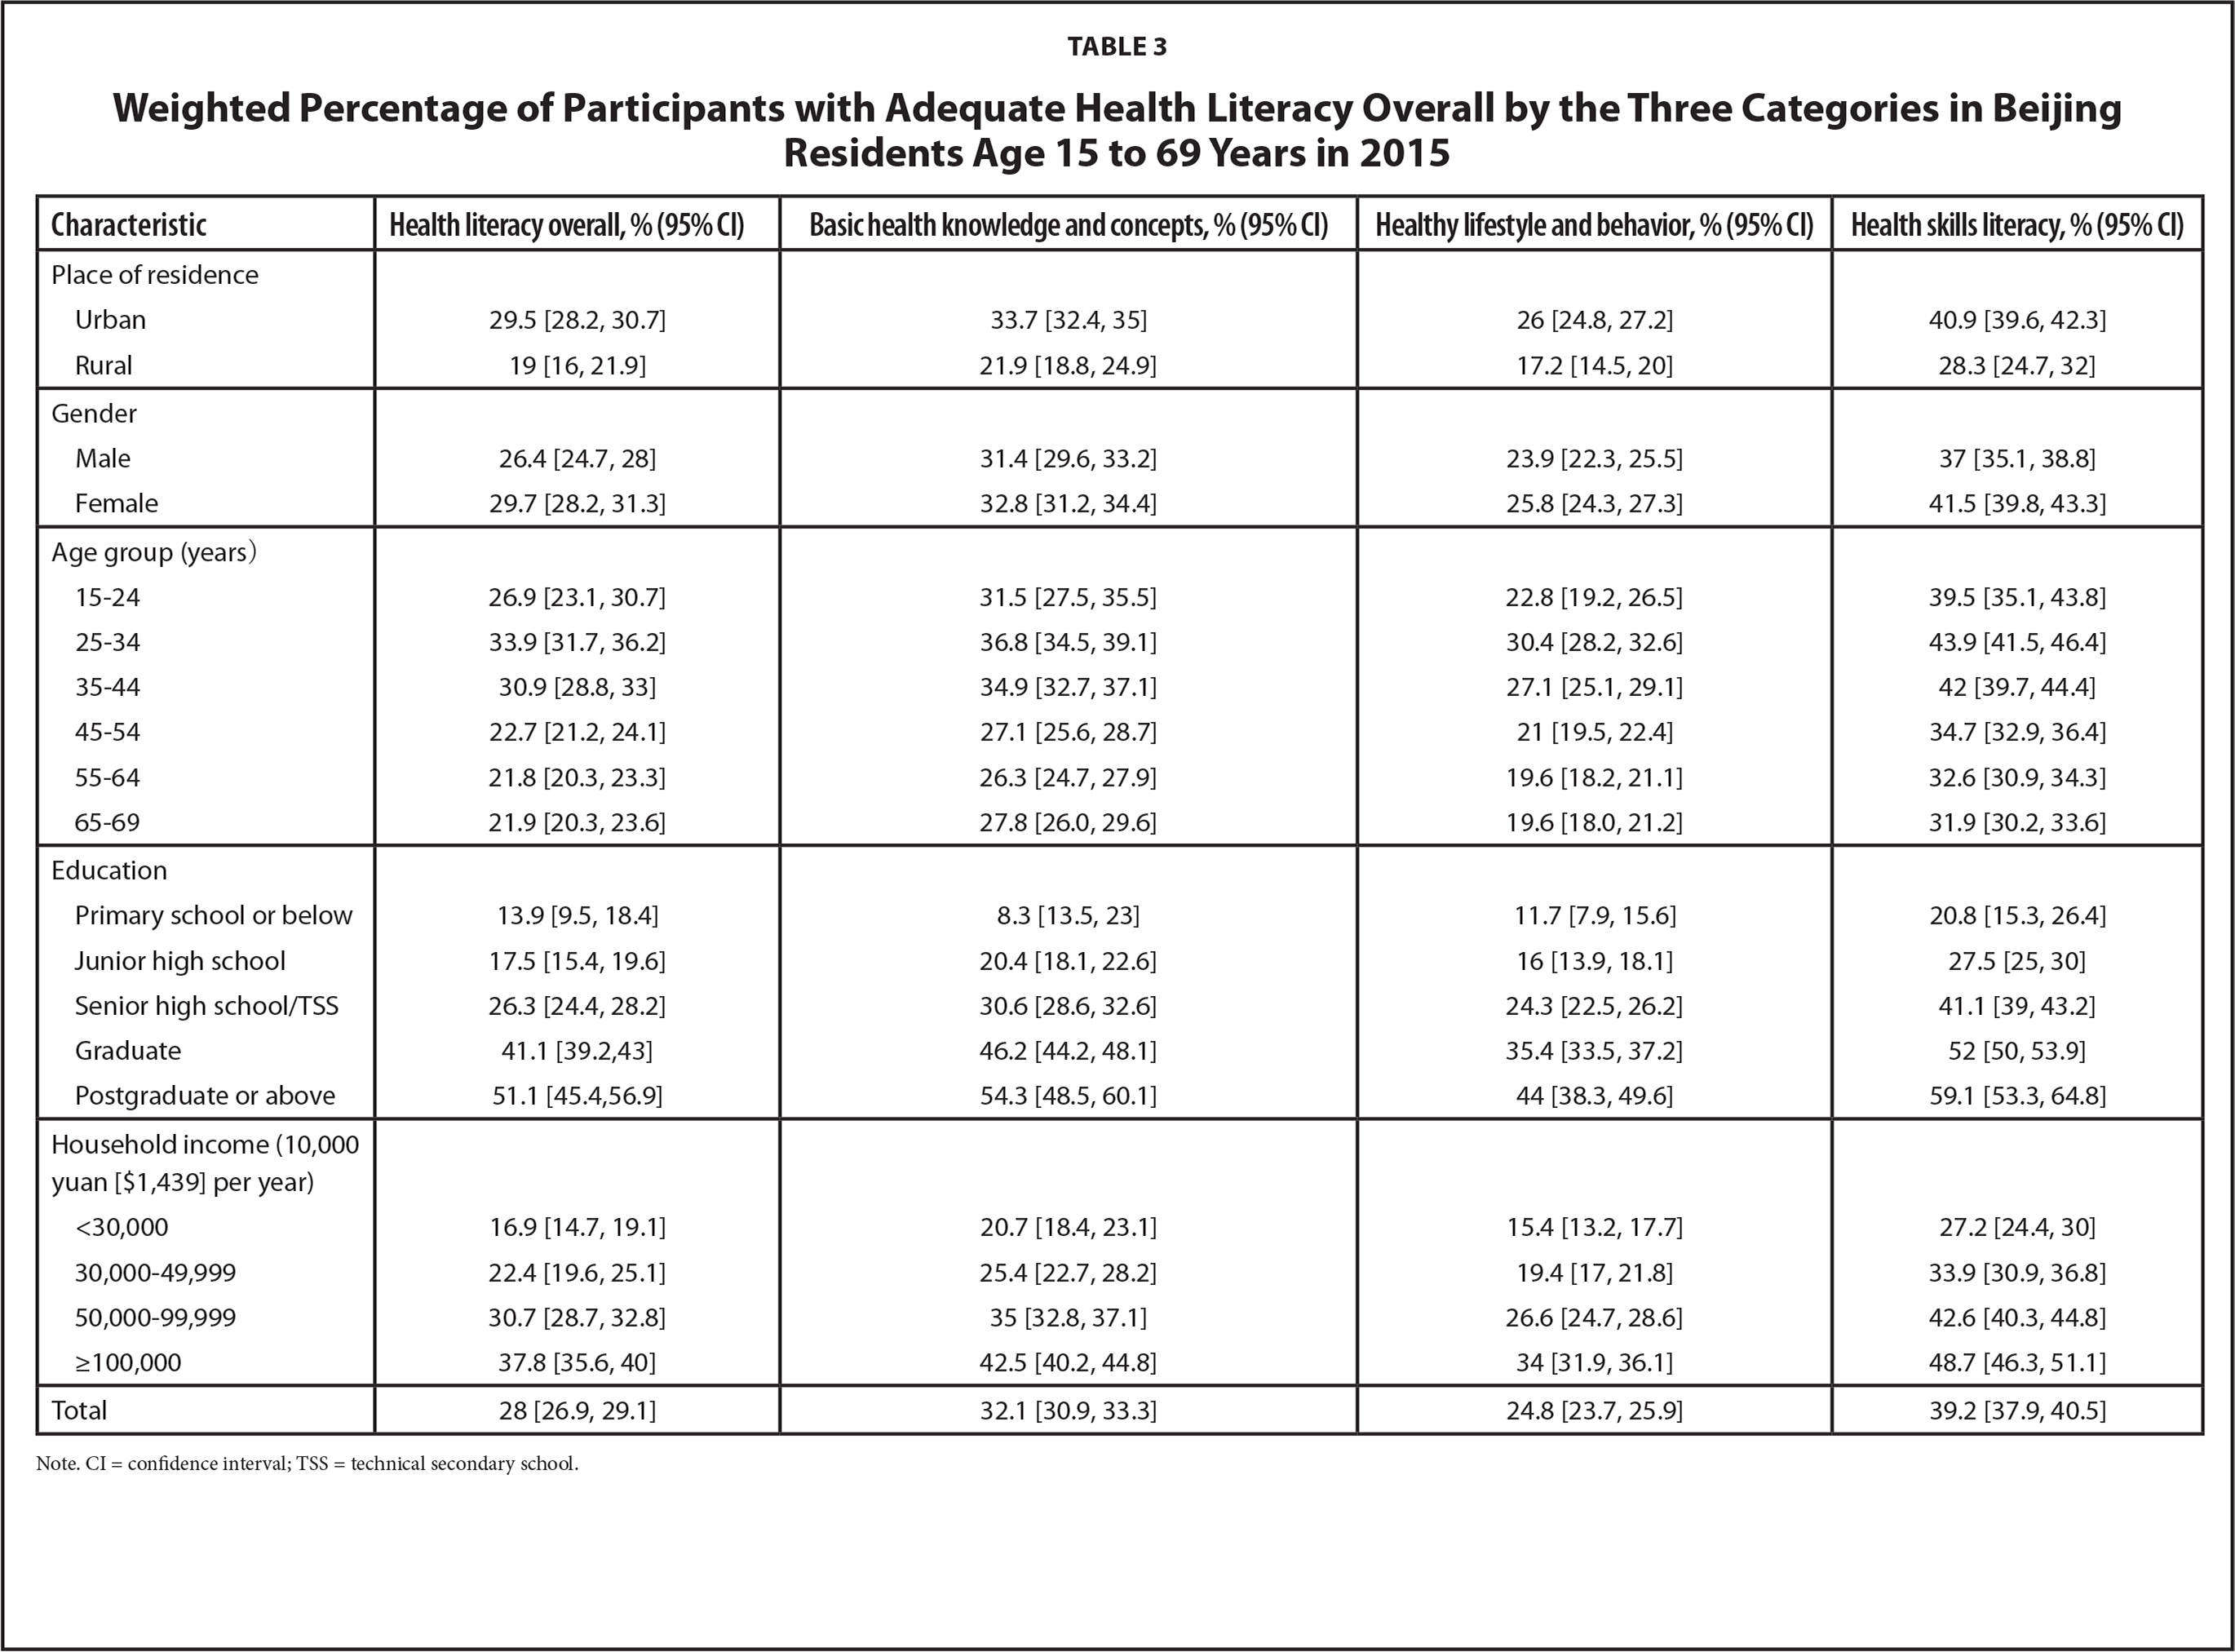 Weighted Percentage of Participants with Adequate Health Literacy Overall by the Three Categories in Beijing Residents Age 15 to 69 Years in 2015